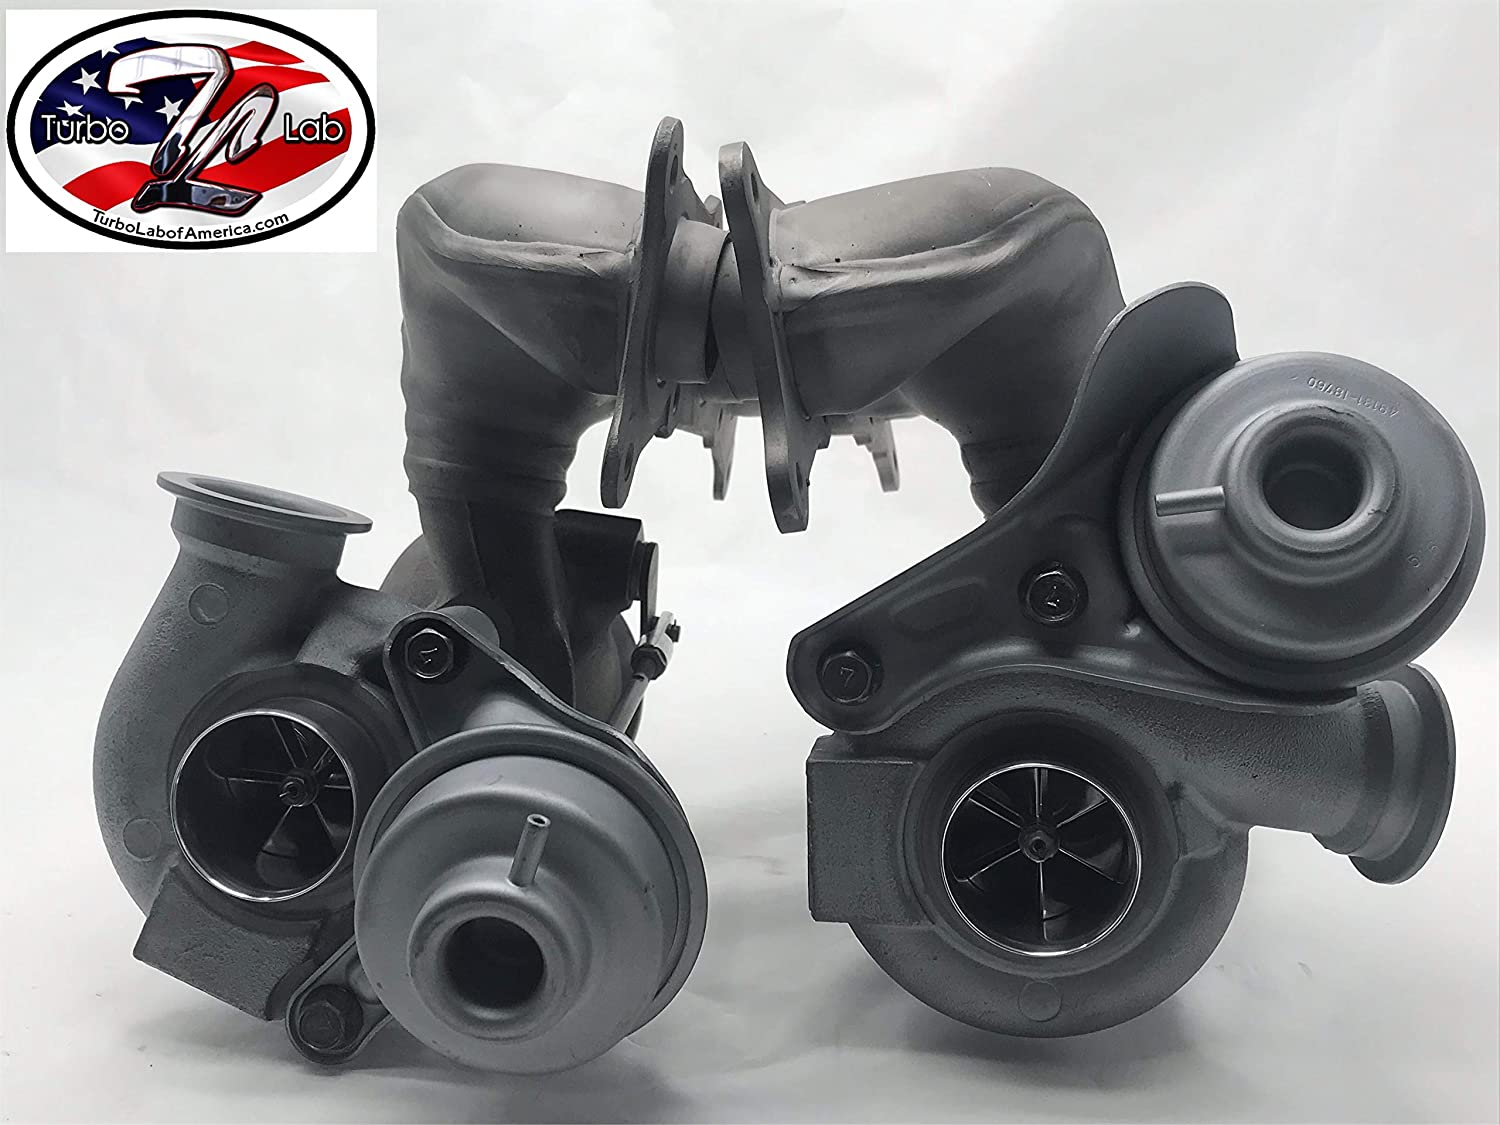 25% OFF Turbo Lab America Upgraded Twin Turbos n54 39.6mm Super beauty product restock quality top 335i